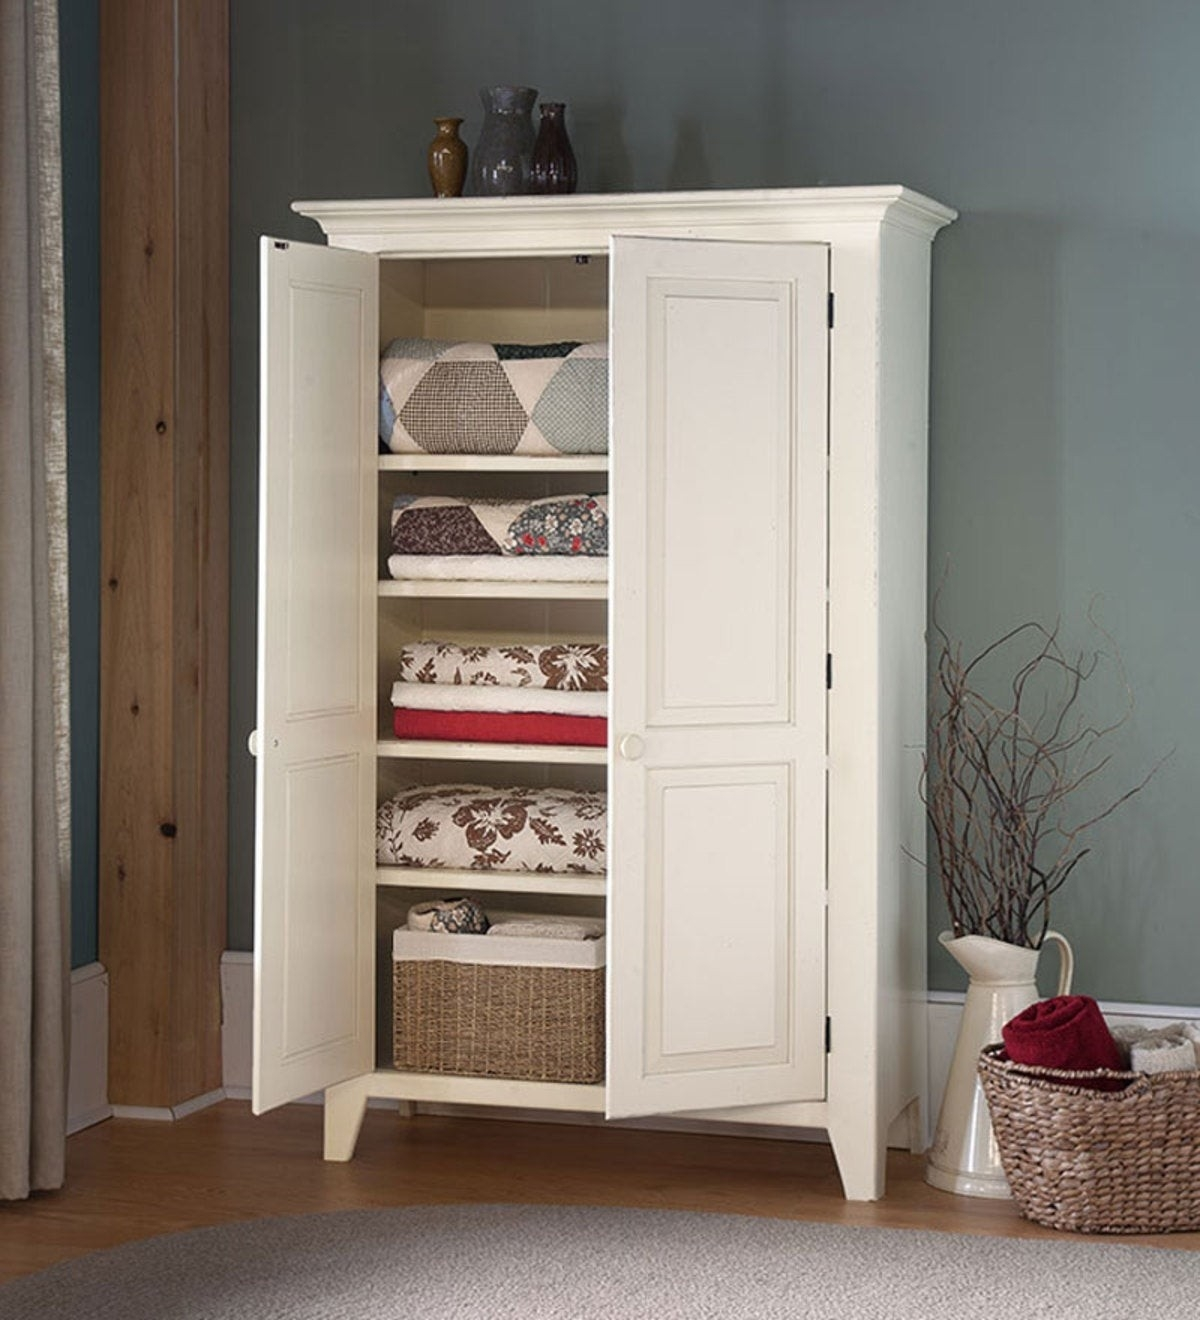 Picture of: Free Standing Linen Cabinets Ideas On Foter